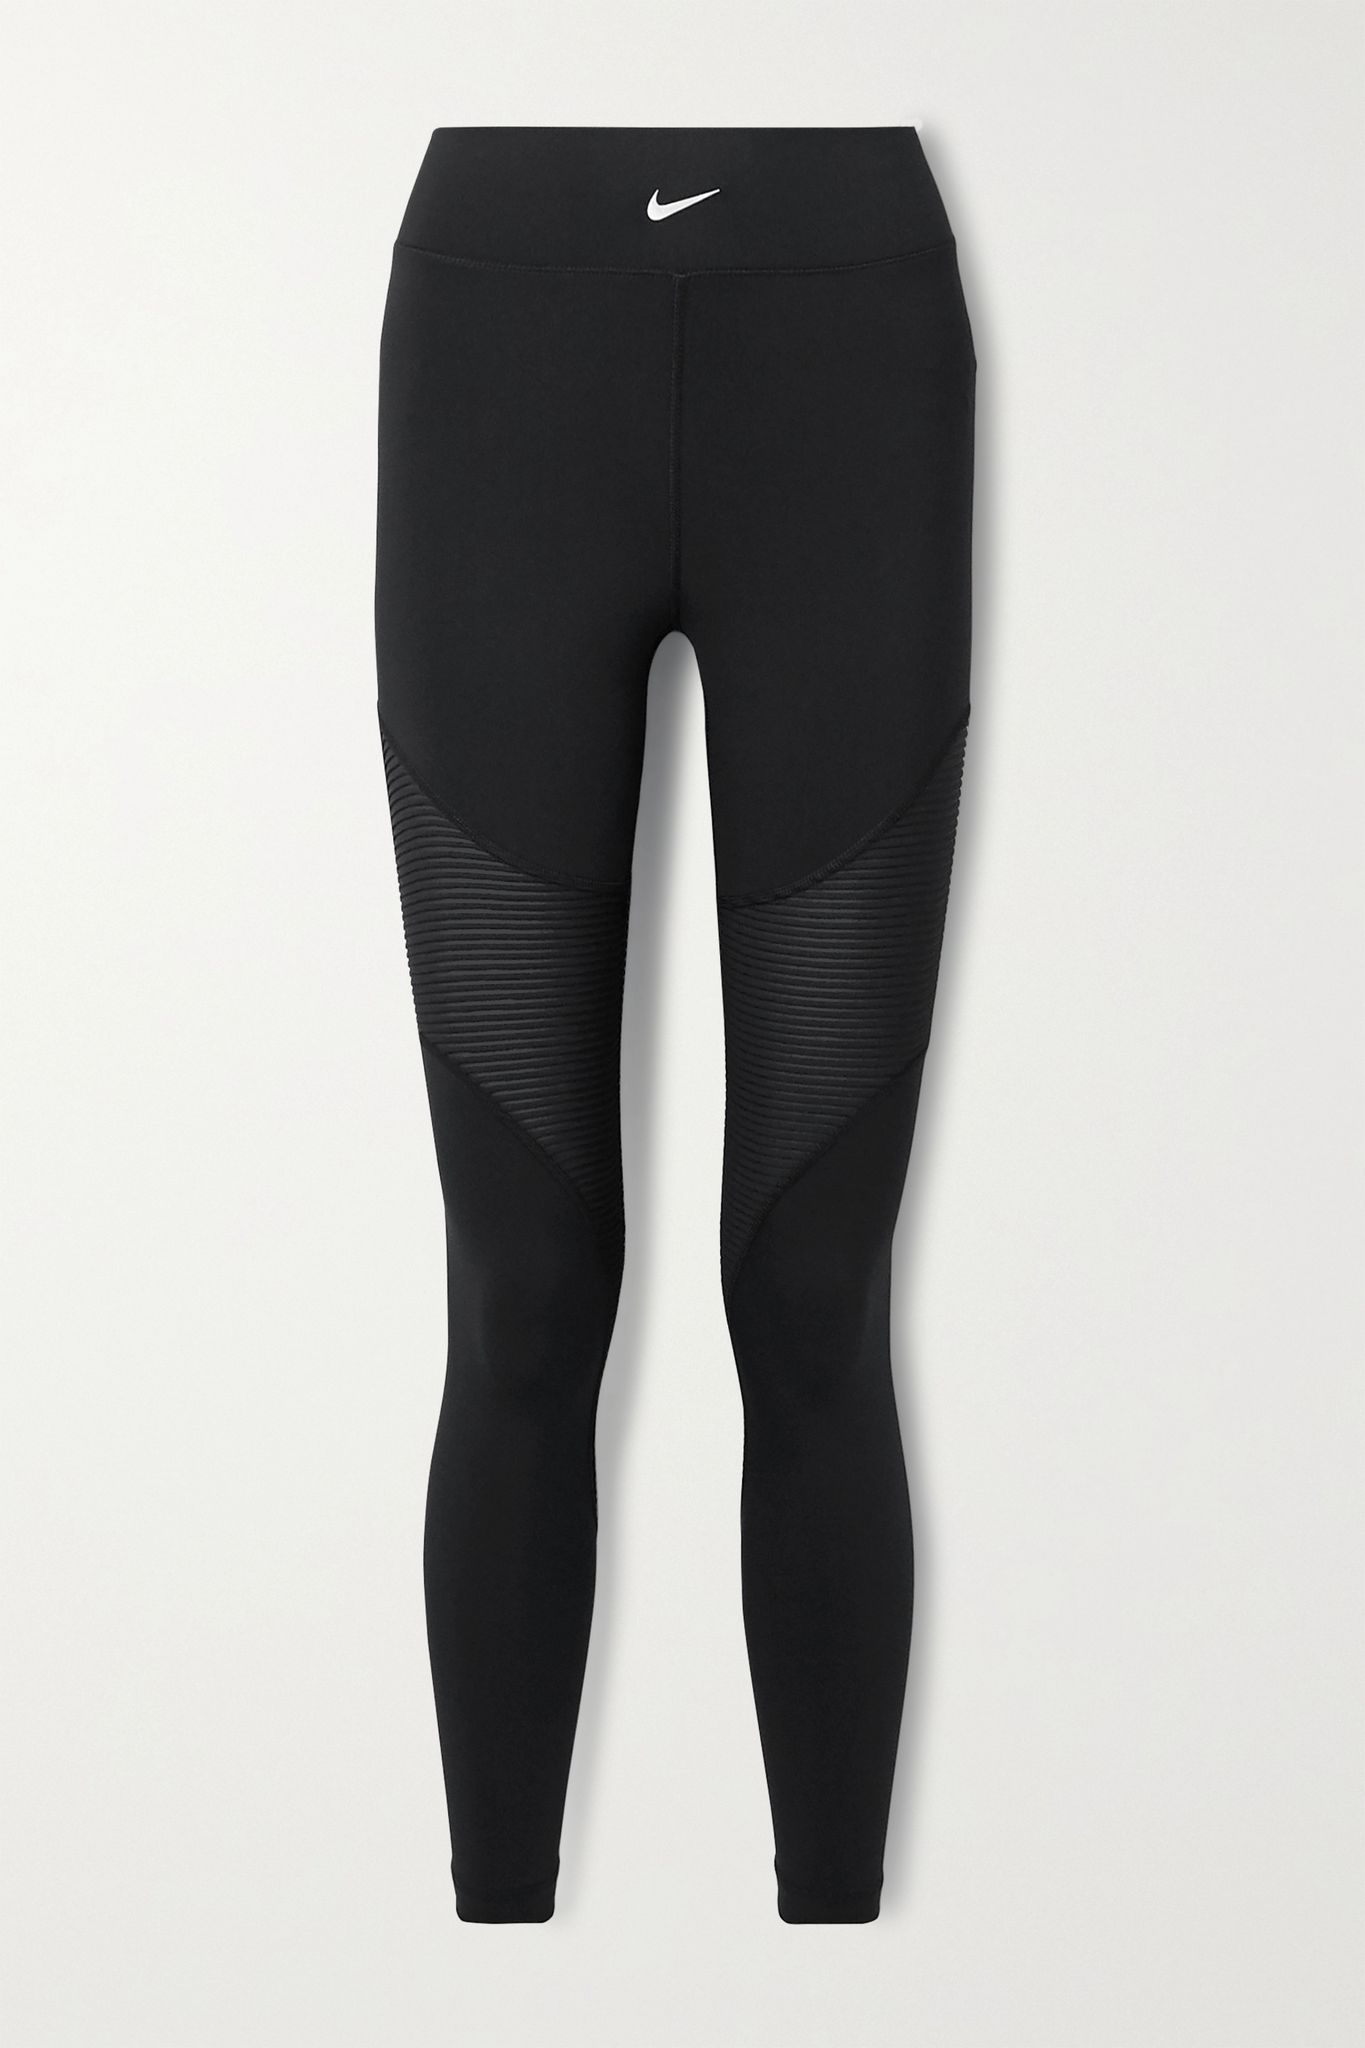 Pro paneled Aeroadapt stretch leggings by Nike, available on net-a-porter.com for $90 Kendall Jenner Pants SIMILAR PRODUCT